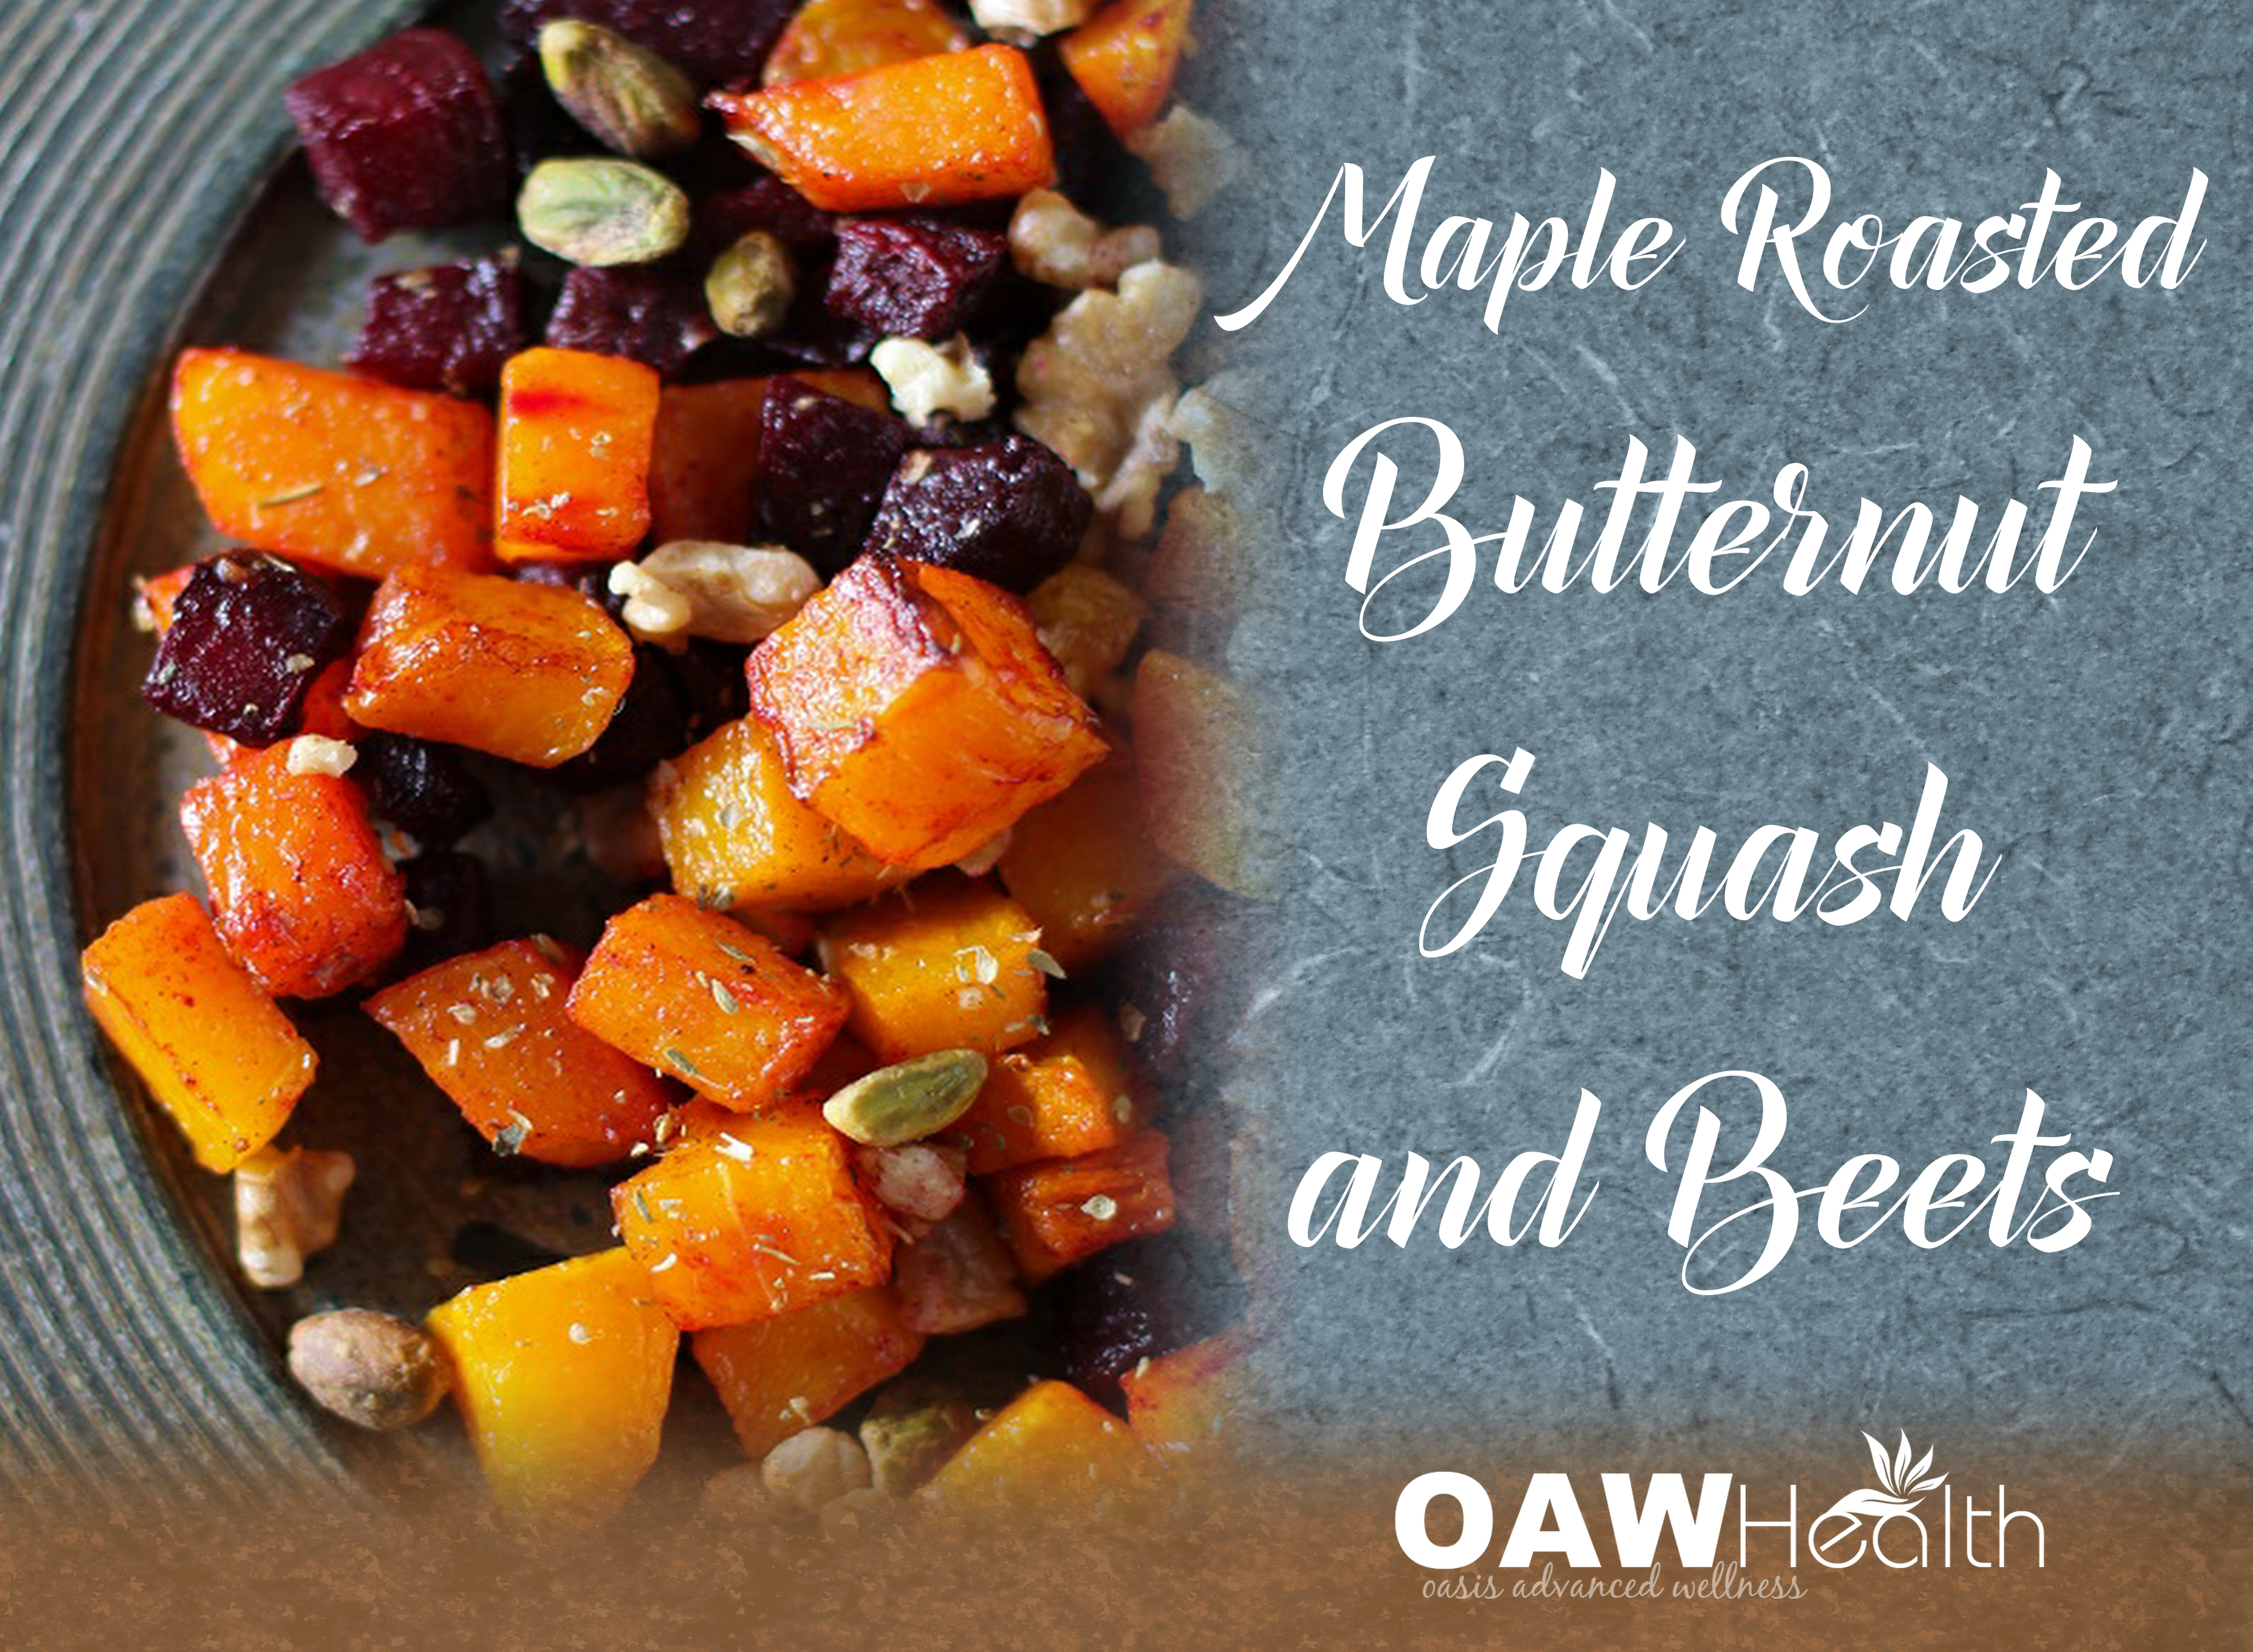 Maple Roasted Butternut Squash and Beets